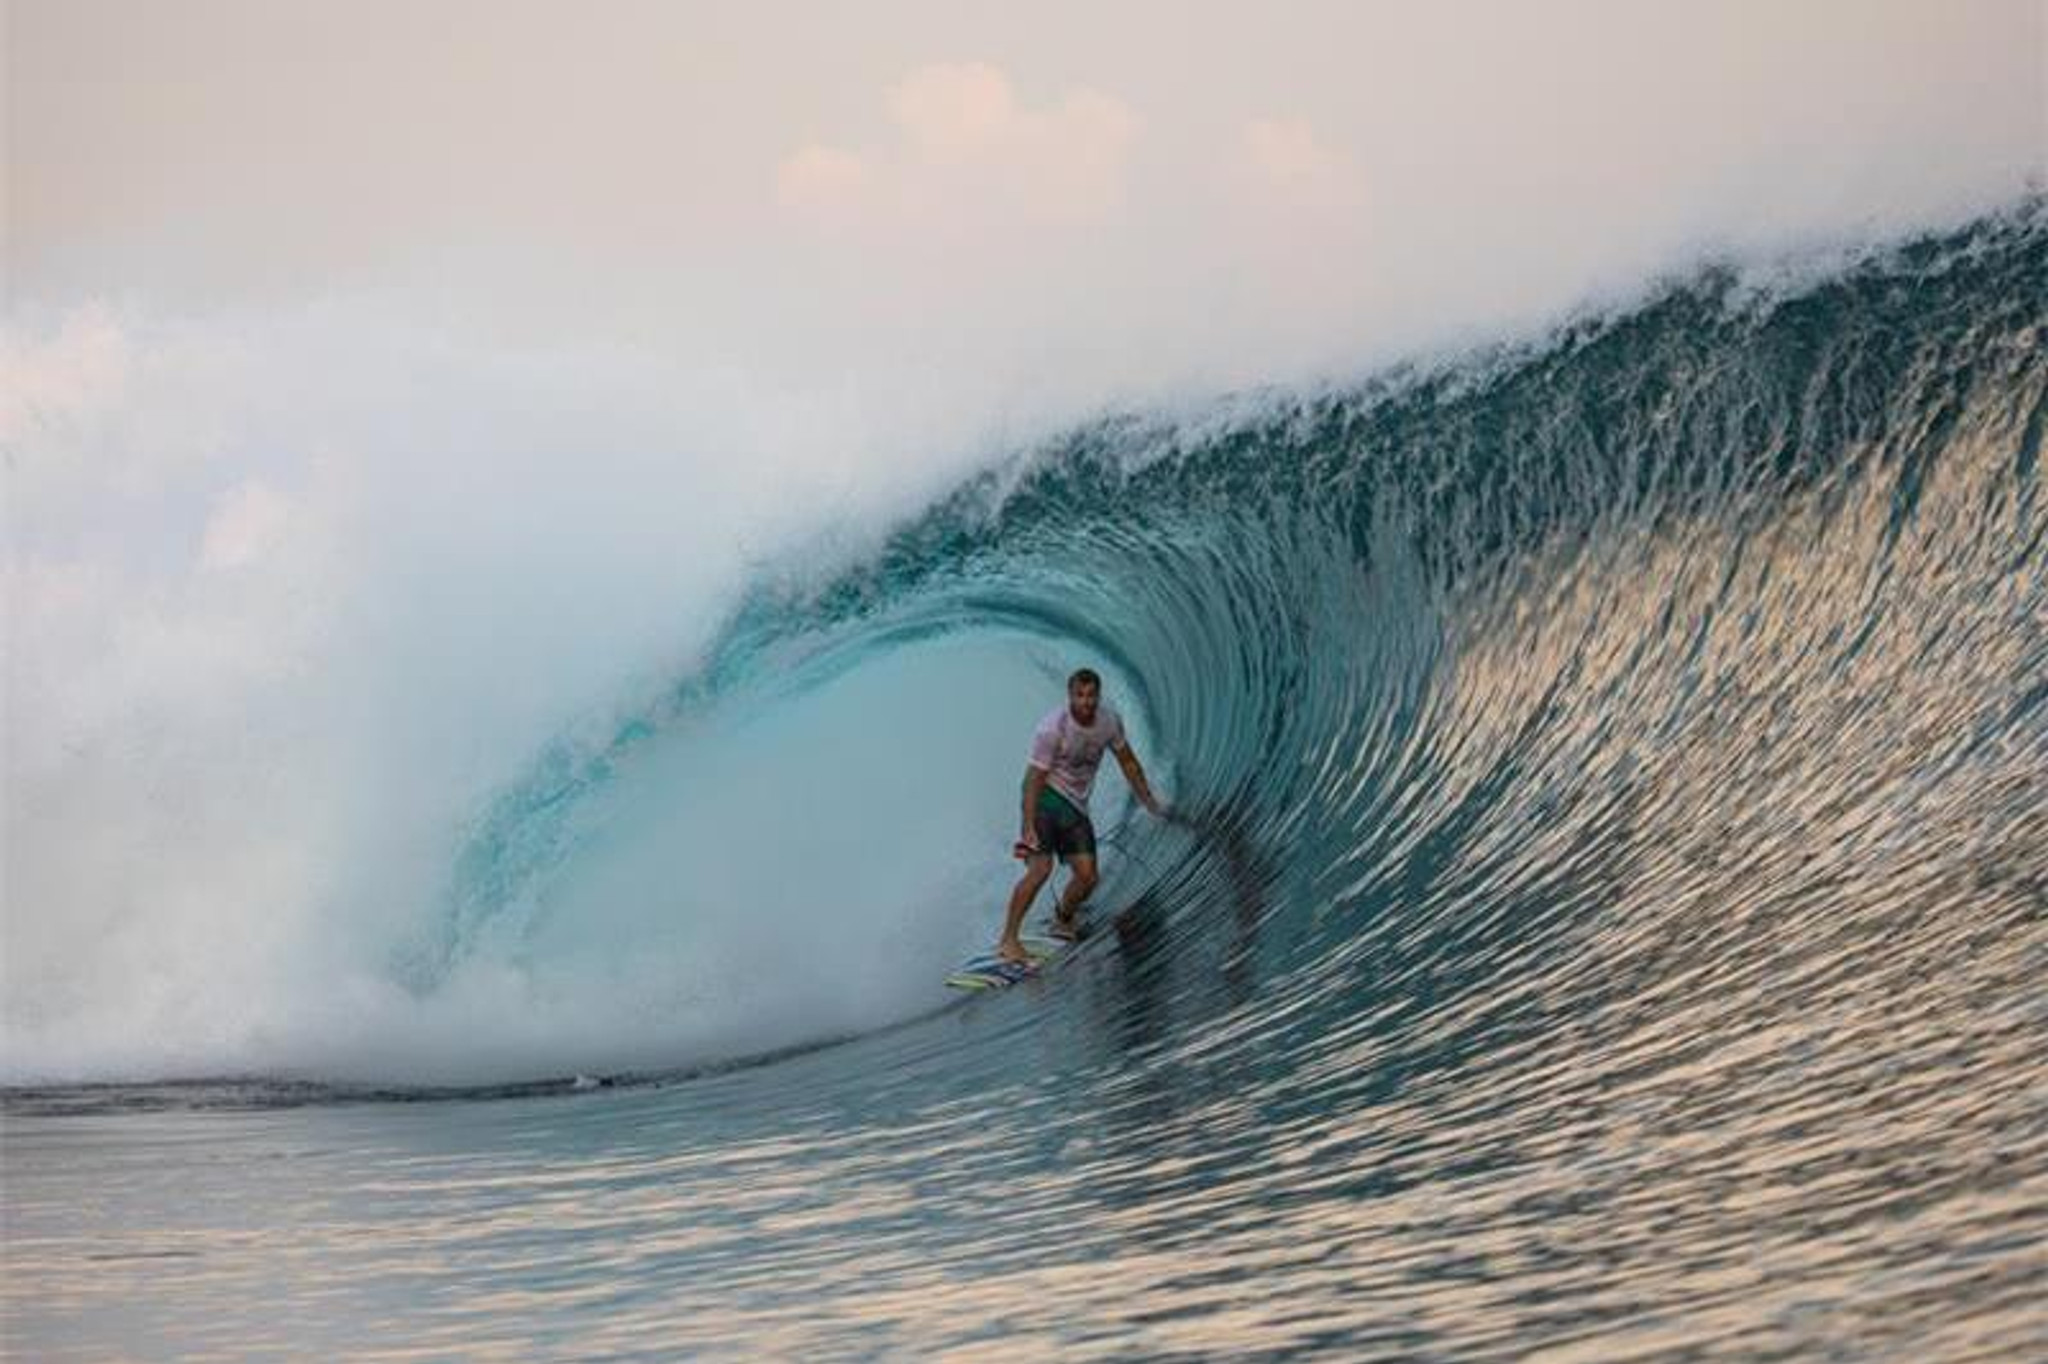 Want to go to the Mentawai Islands?